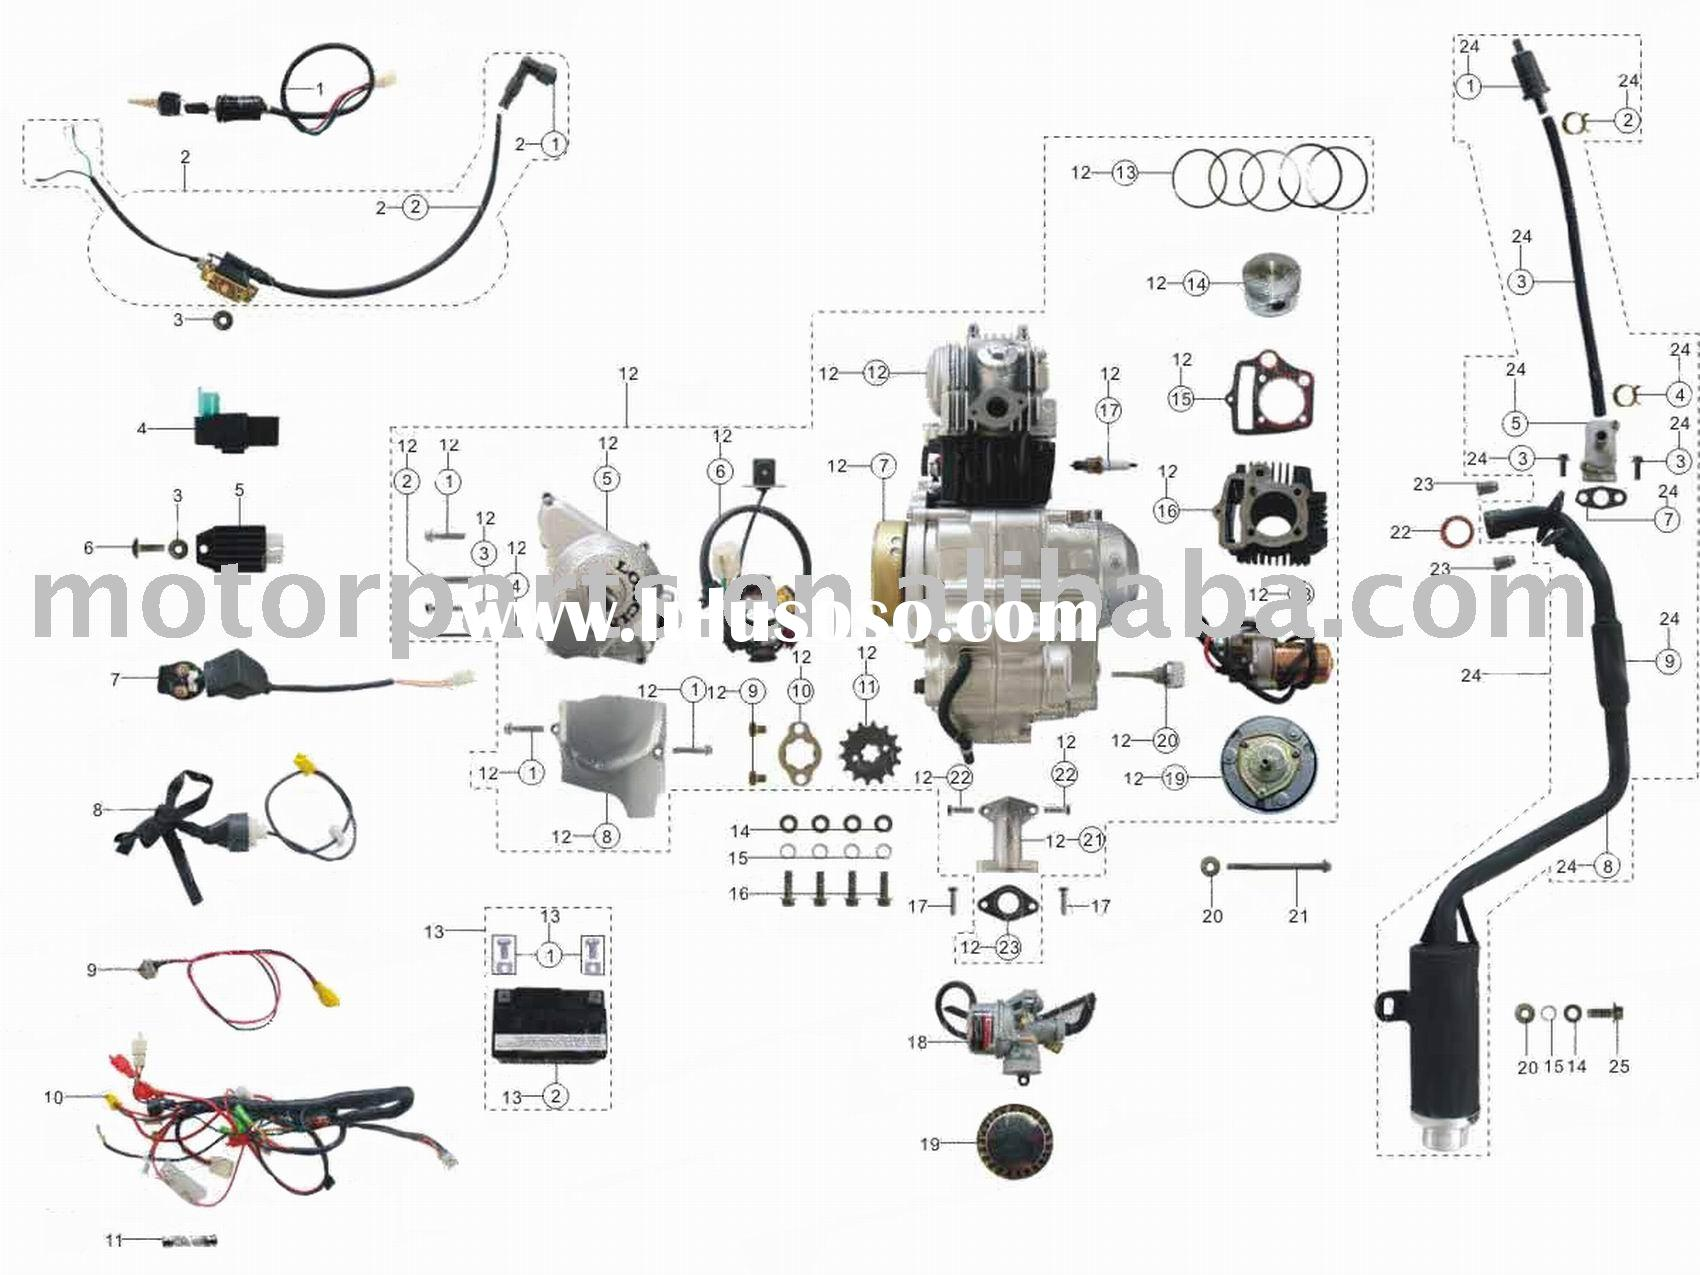 ENGINE_PARTS_110CC_ATV_PARTS_WIRING_ASSY sunl 110cc atv wiring diagram, sunl 110cc atv wiring diagram sunl wiring diagram at eliteediting.co